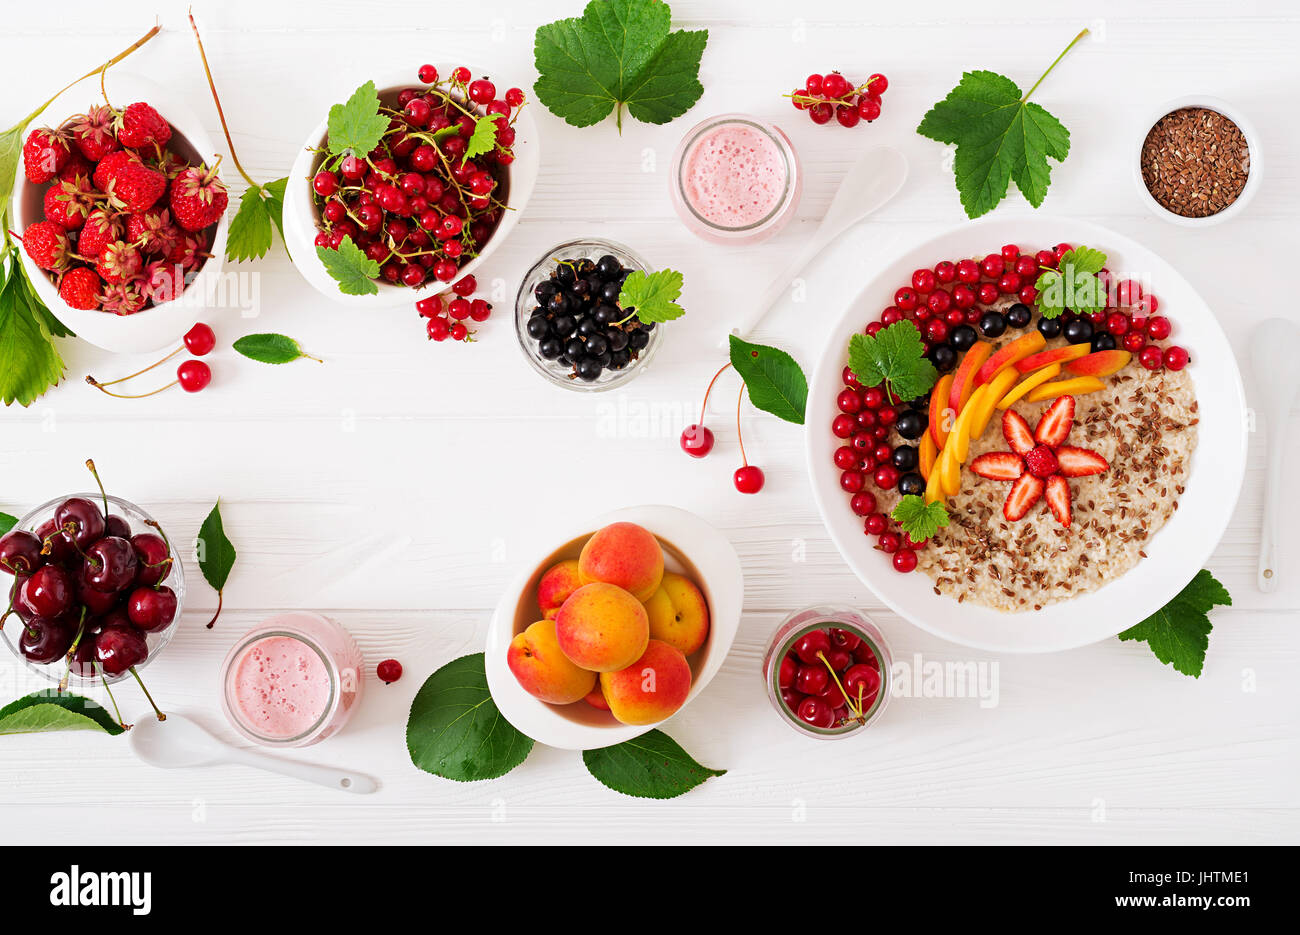 Tasty and healthy oatmeal porridge with berry, flax seeds and smoothies. Healthy breakfast. Fitness food. Proper - Stock Image